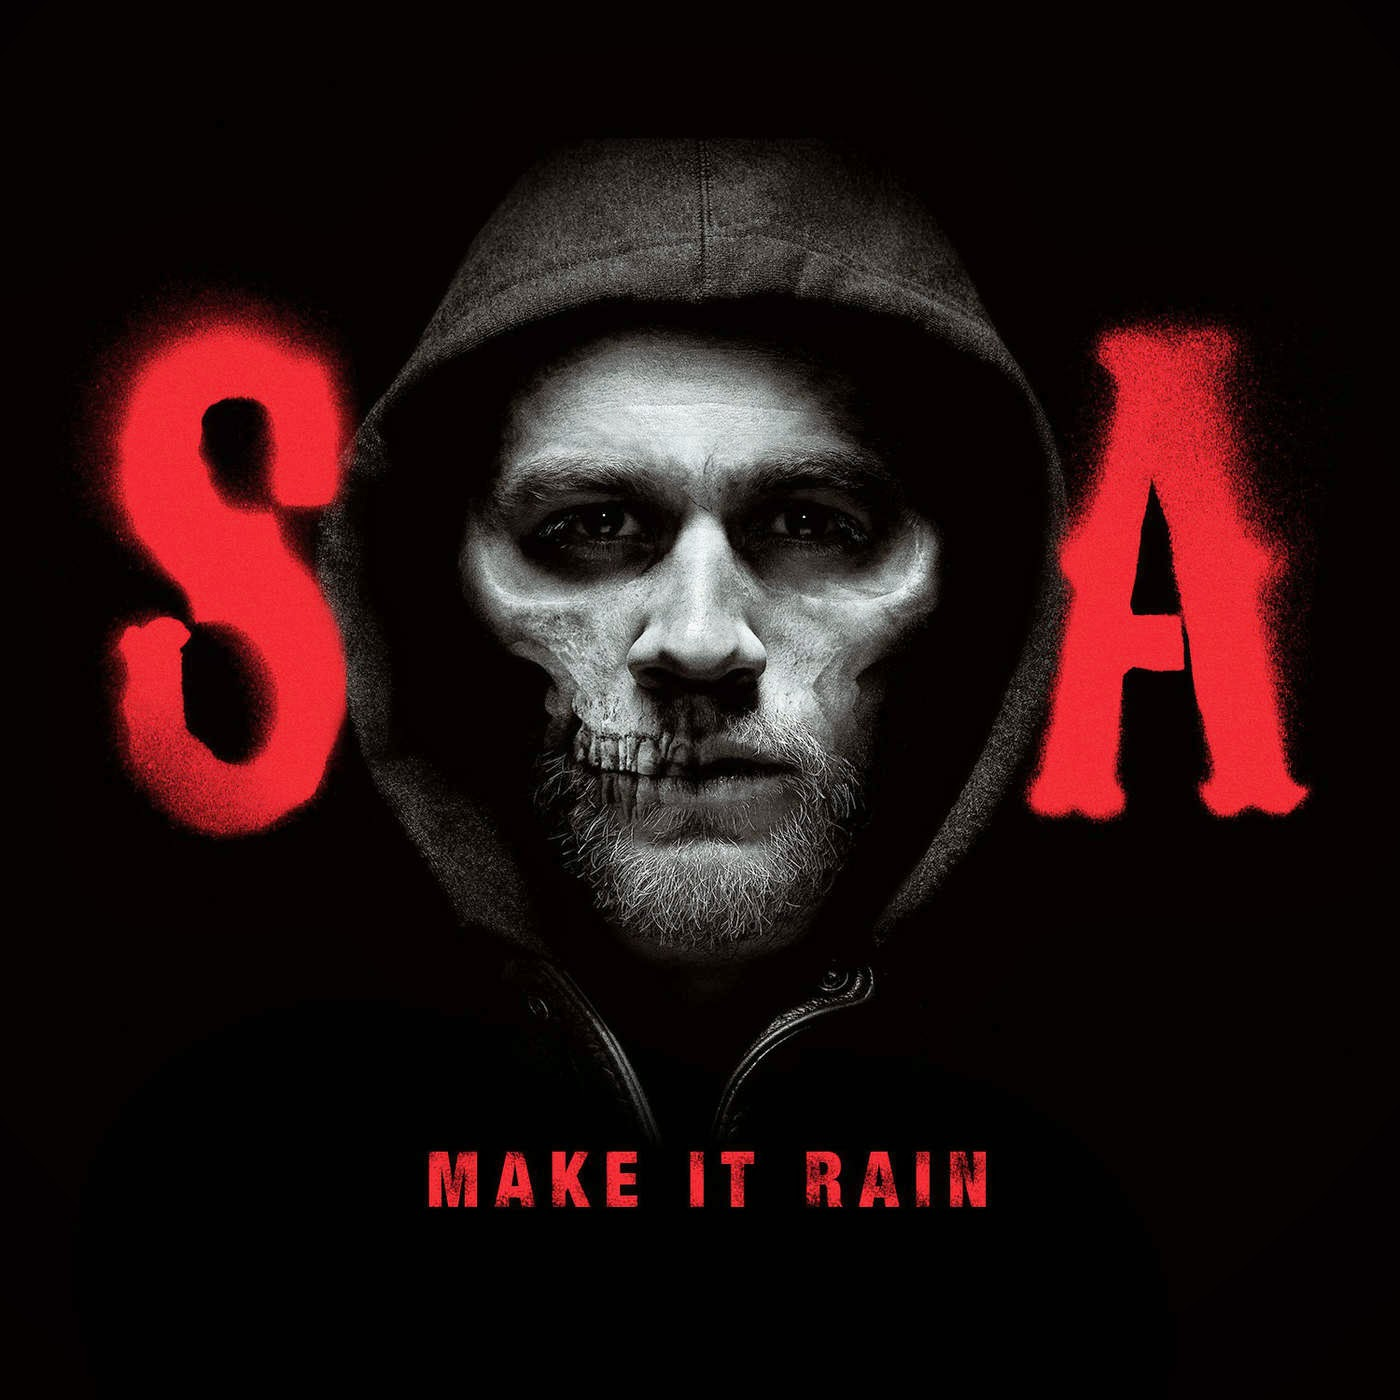 Ed Sheeran - Make It Rain (from Sons of Anarchy) - Single Cover